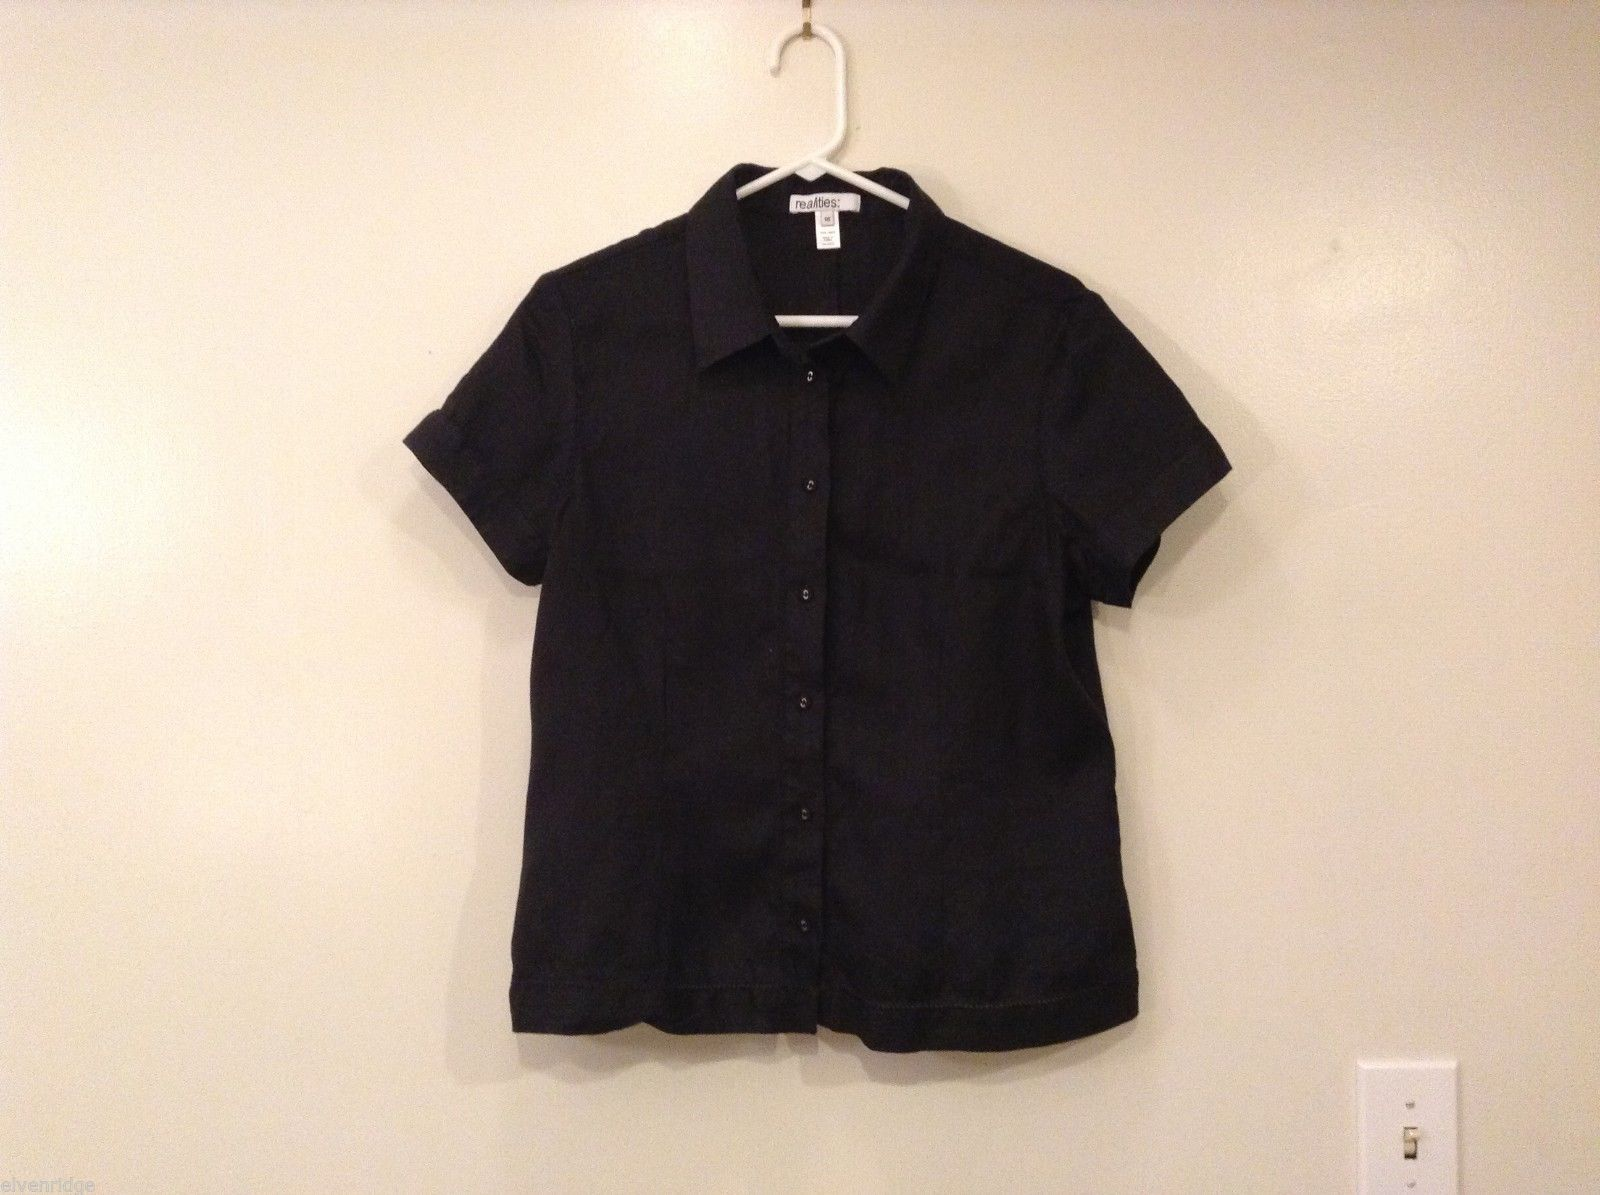 Womens Realities Black 100% Linen Short Sleeve Button Up Blouse Shirt